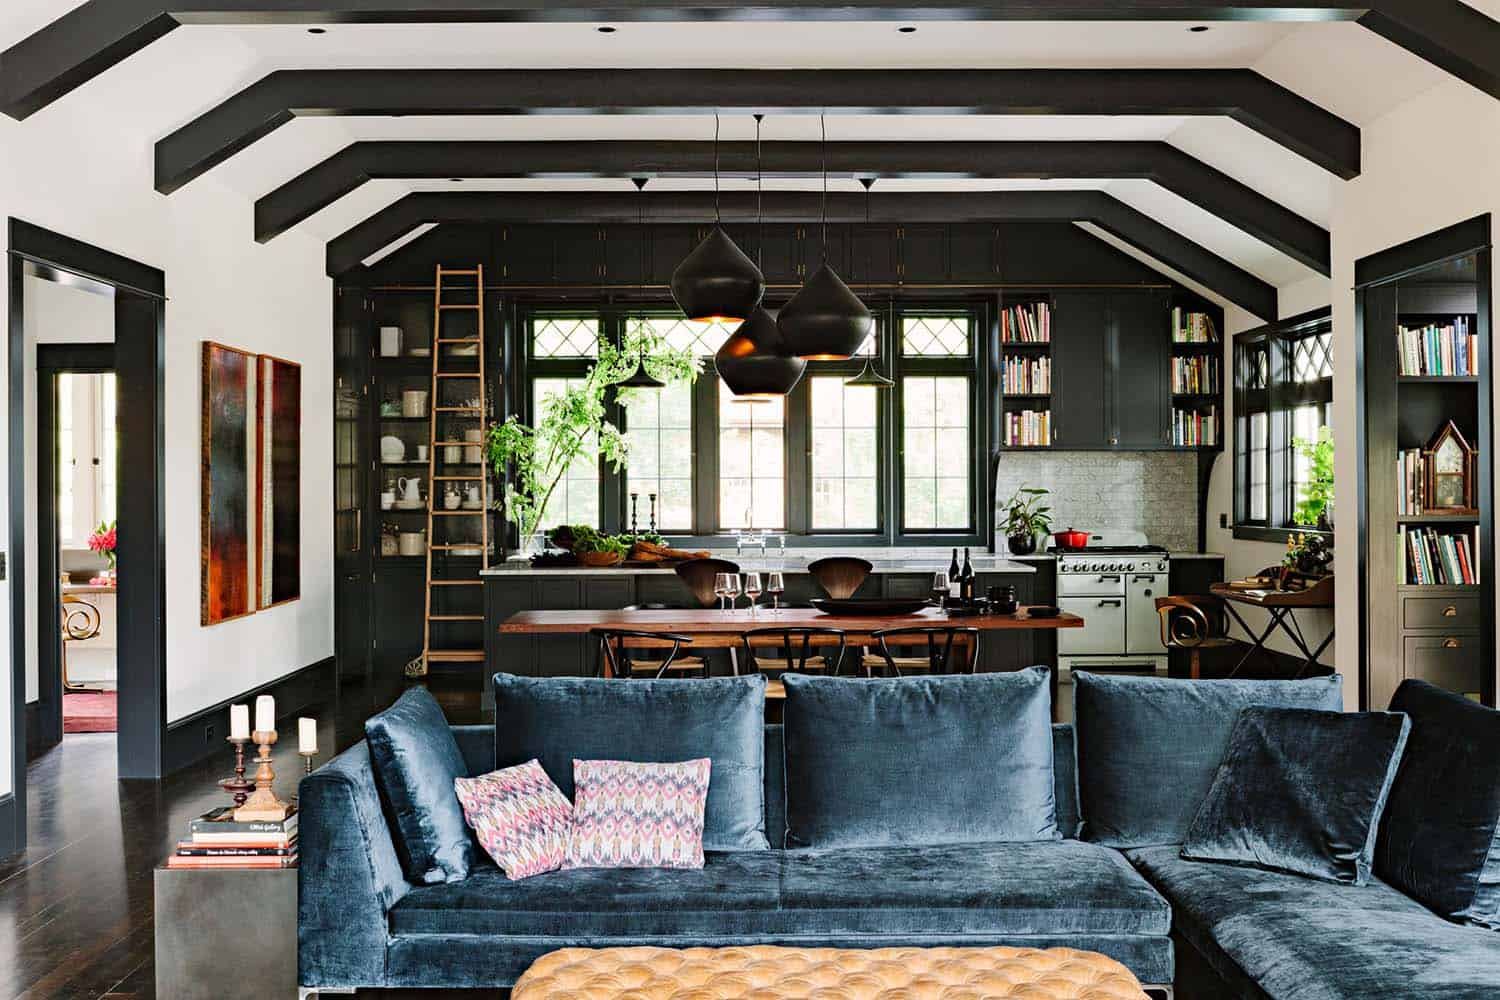 Inviting Library House-Jessica Helgerson-01-1 Kindesign